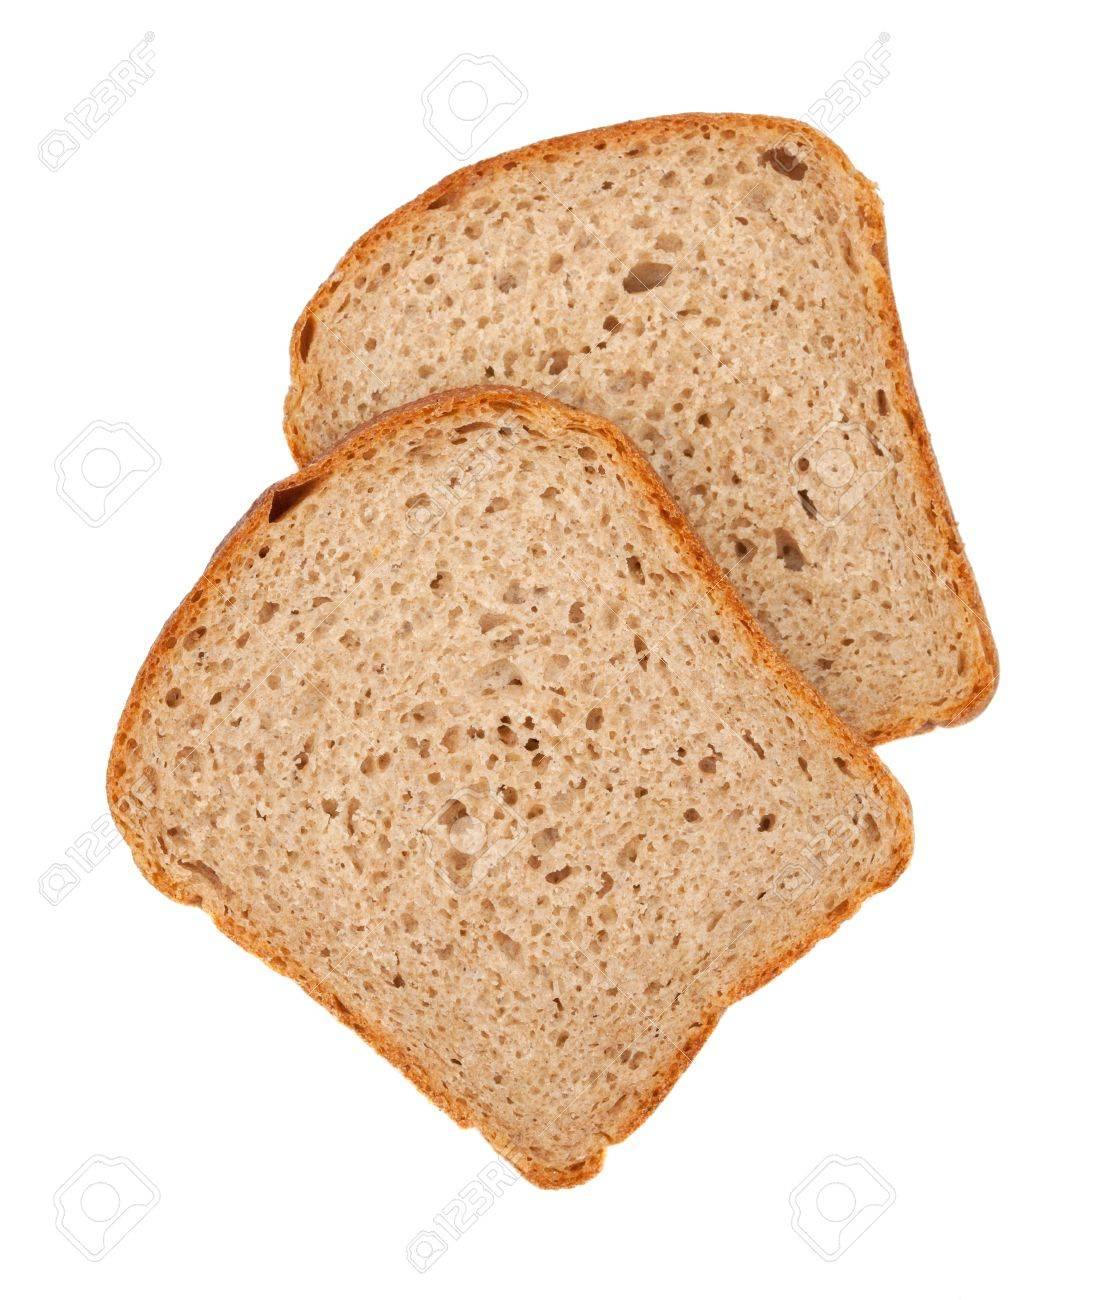 Slice of Bread Clipart Slice of Bread Two Slices of